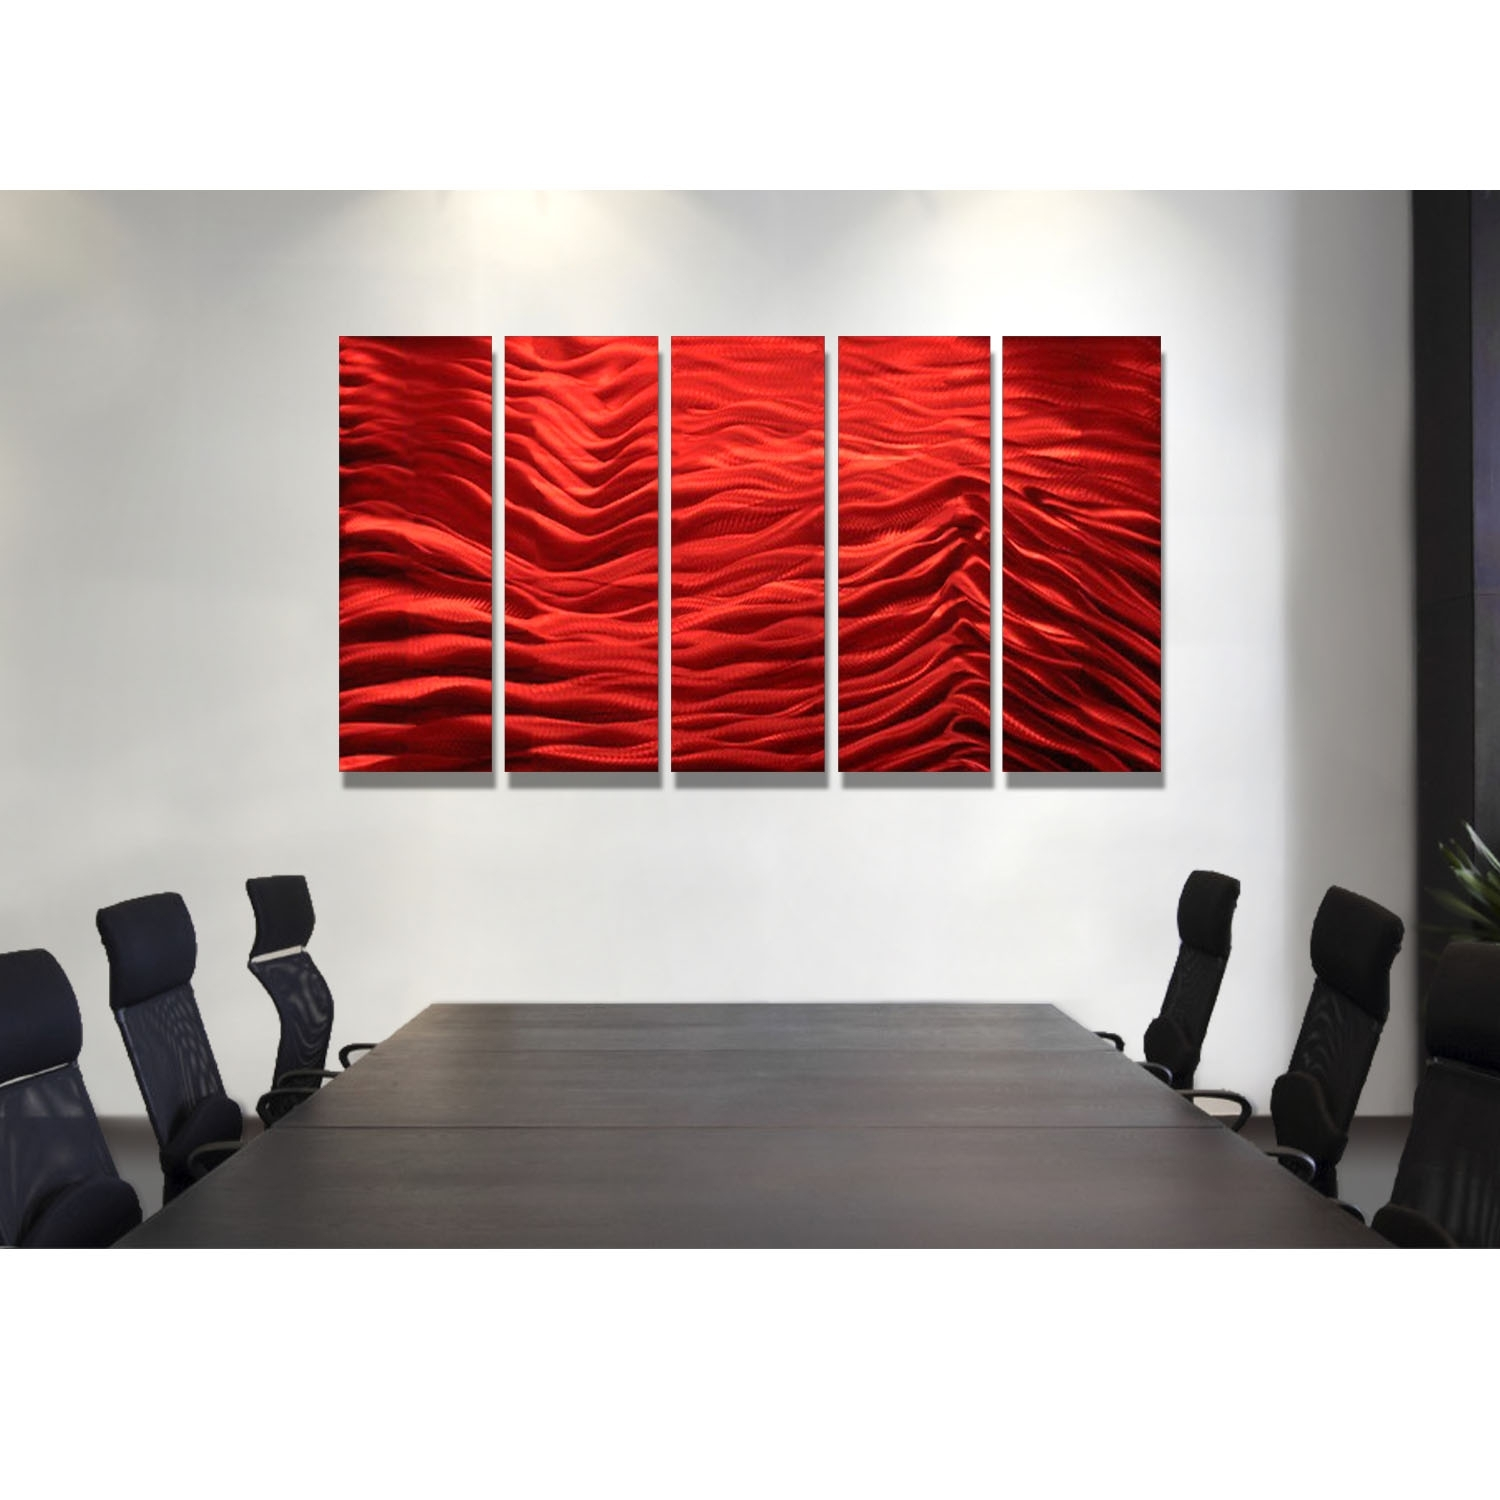 Red Inertia – Red Metal Wall Art – 5 Panel Wall Décorjon Allen Within Most Recent Panel Wall Art (View 5 of 20)